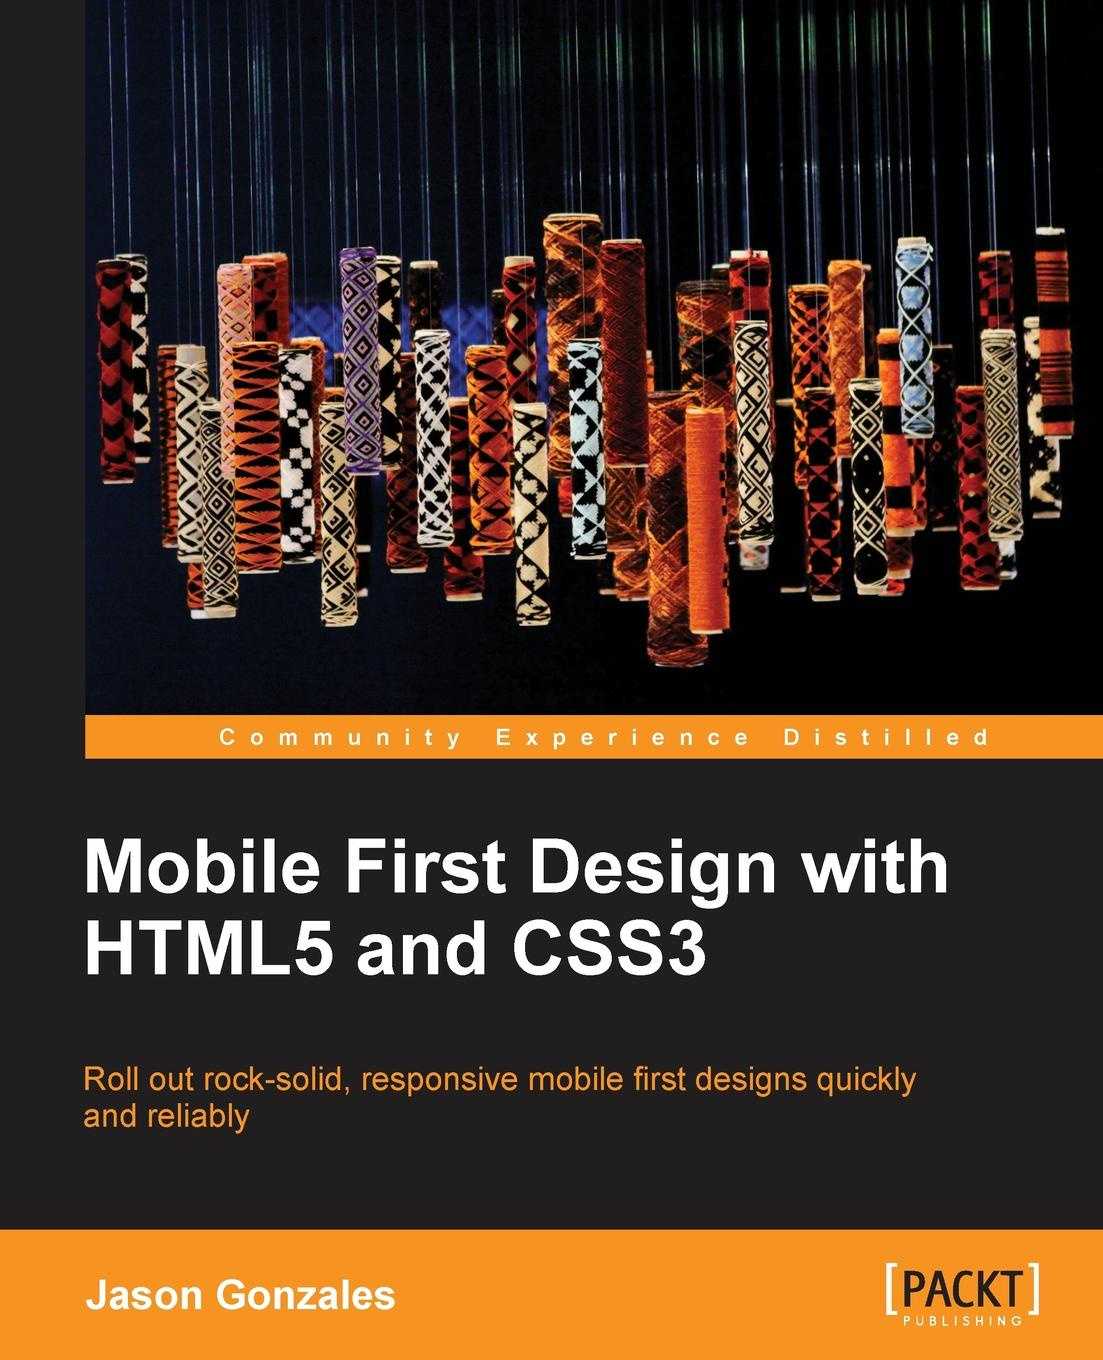 Jason Gonzalez Mobile First Design with HTML5 and CSS3